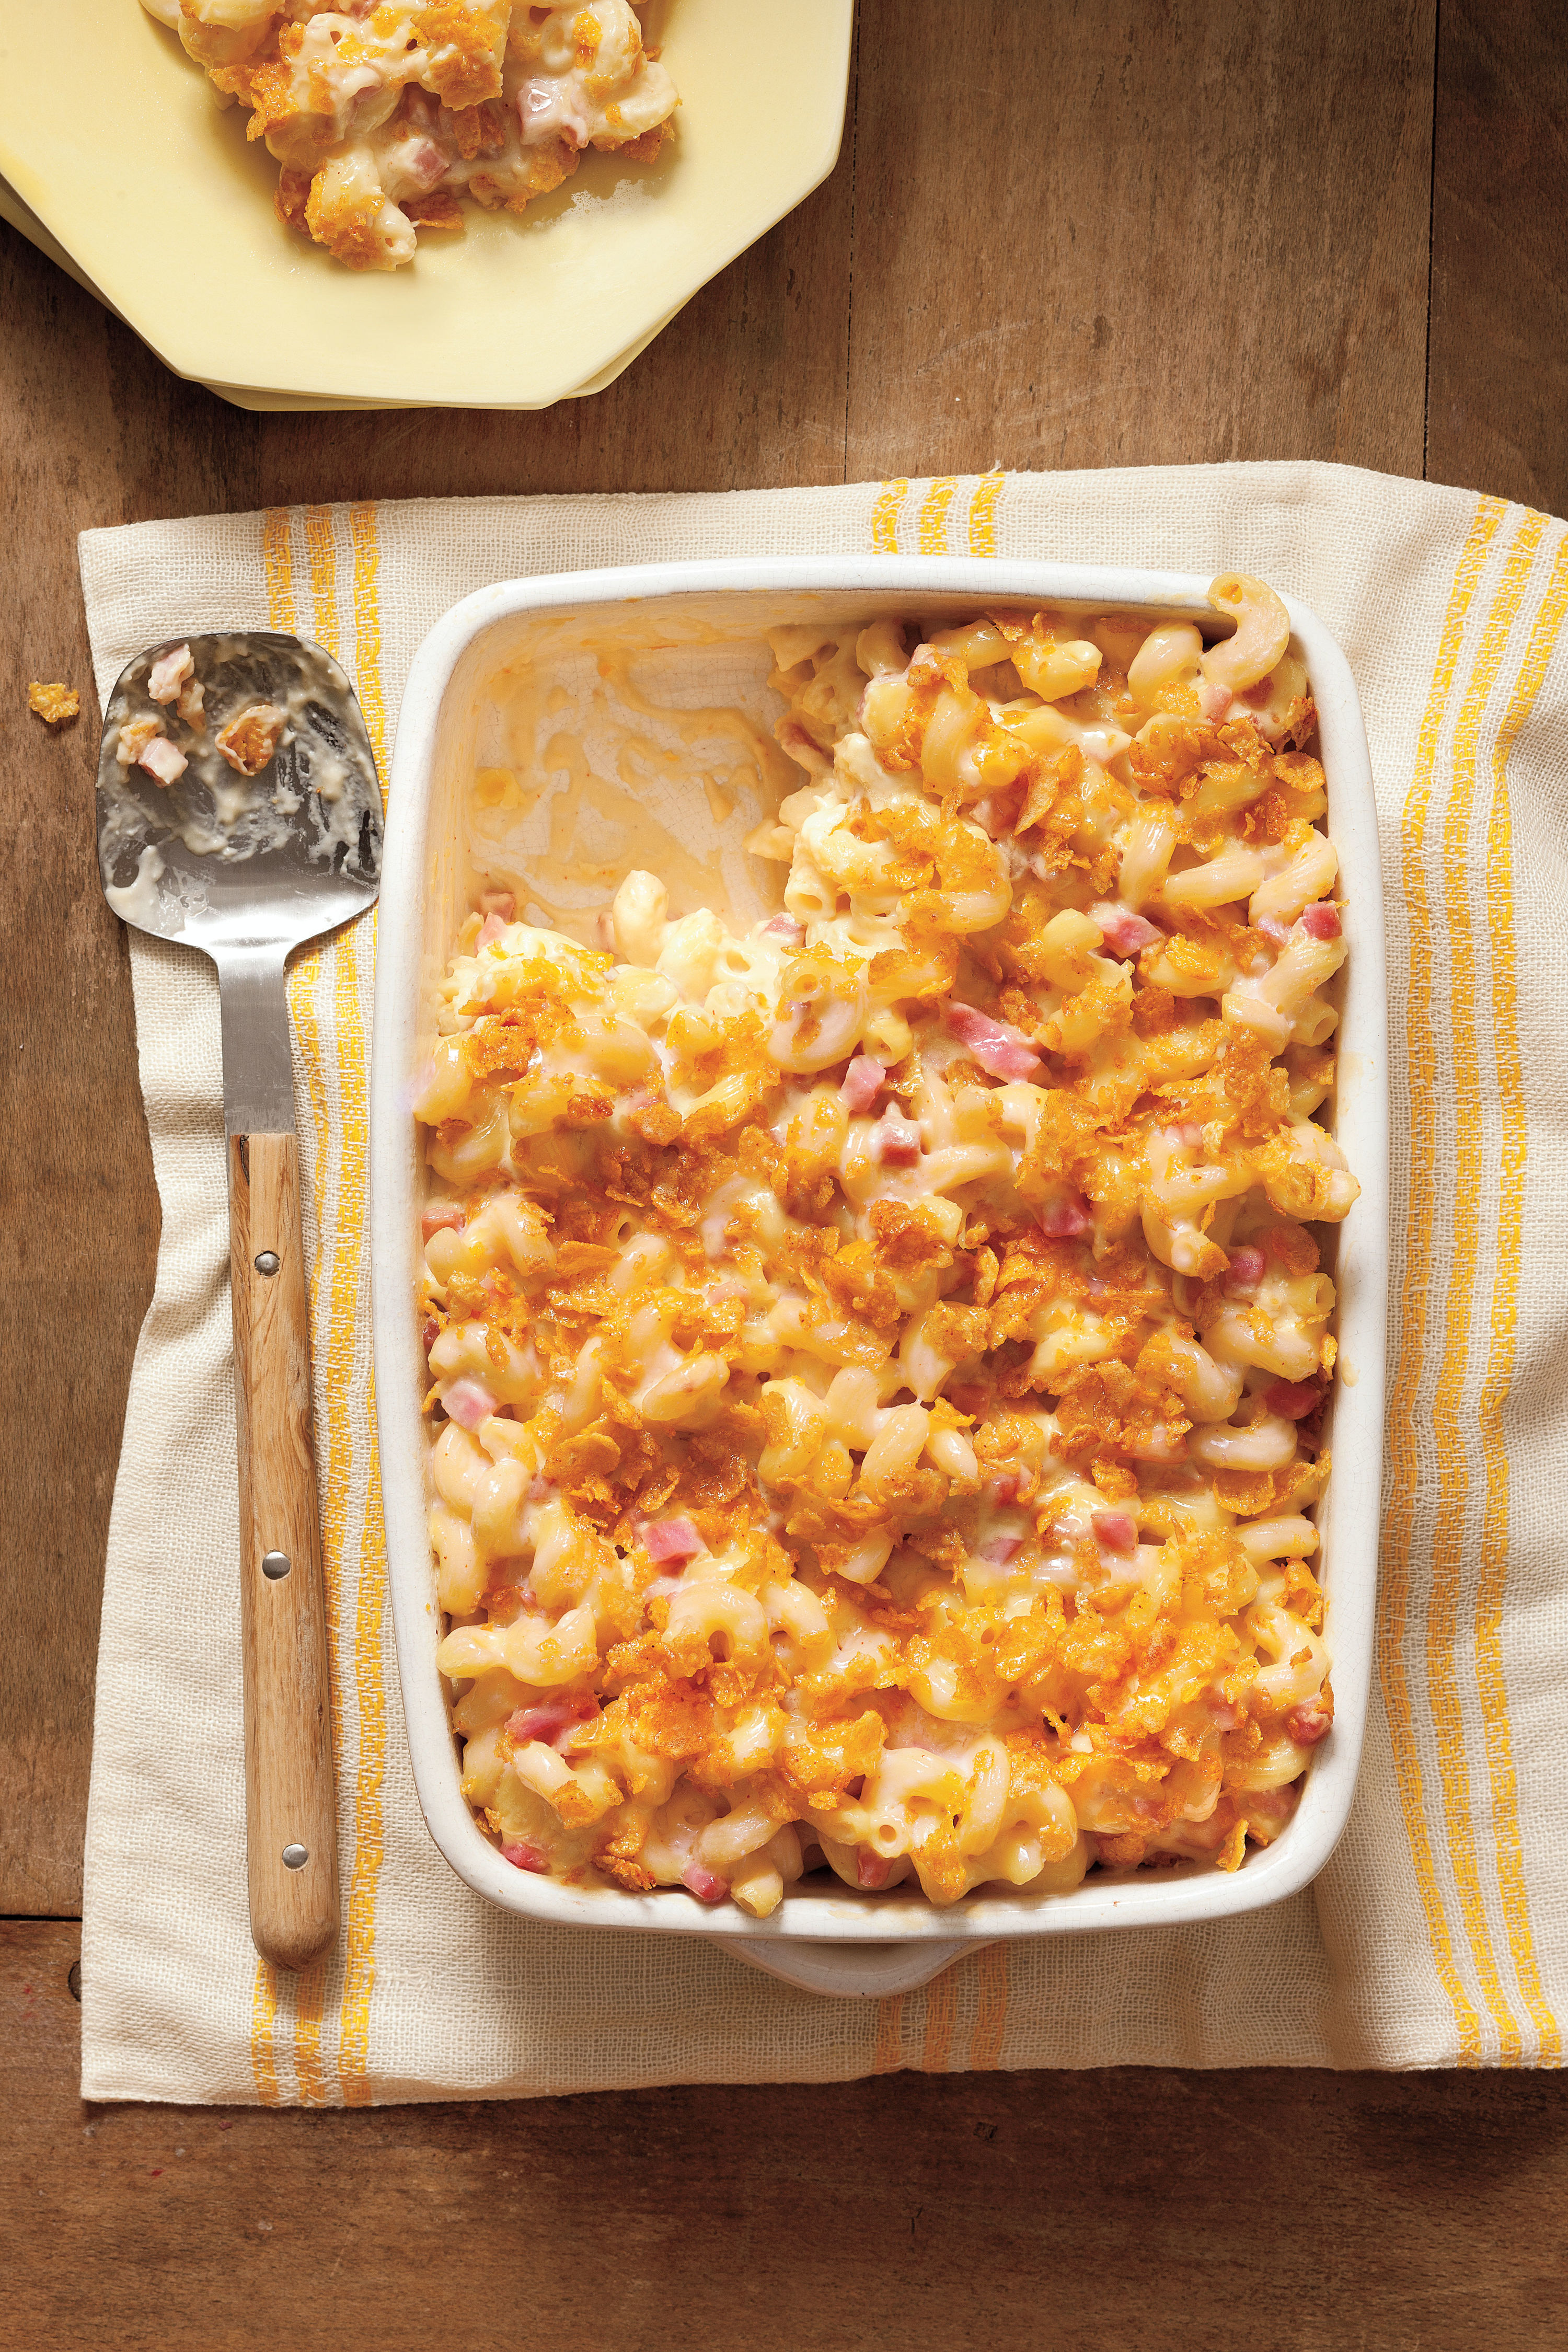 This Mac And Cheese Is A Day-After-Easter Tradition In Our House